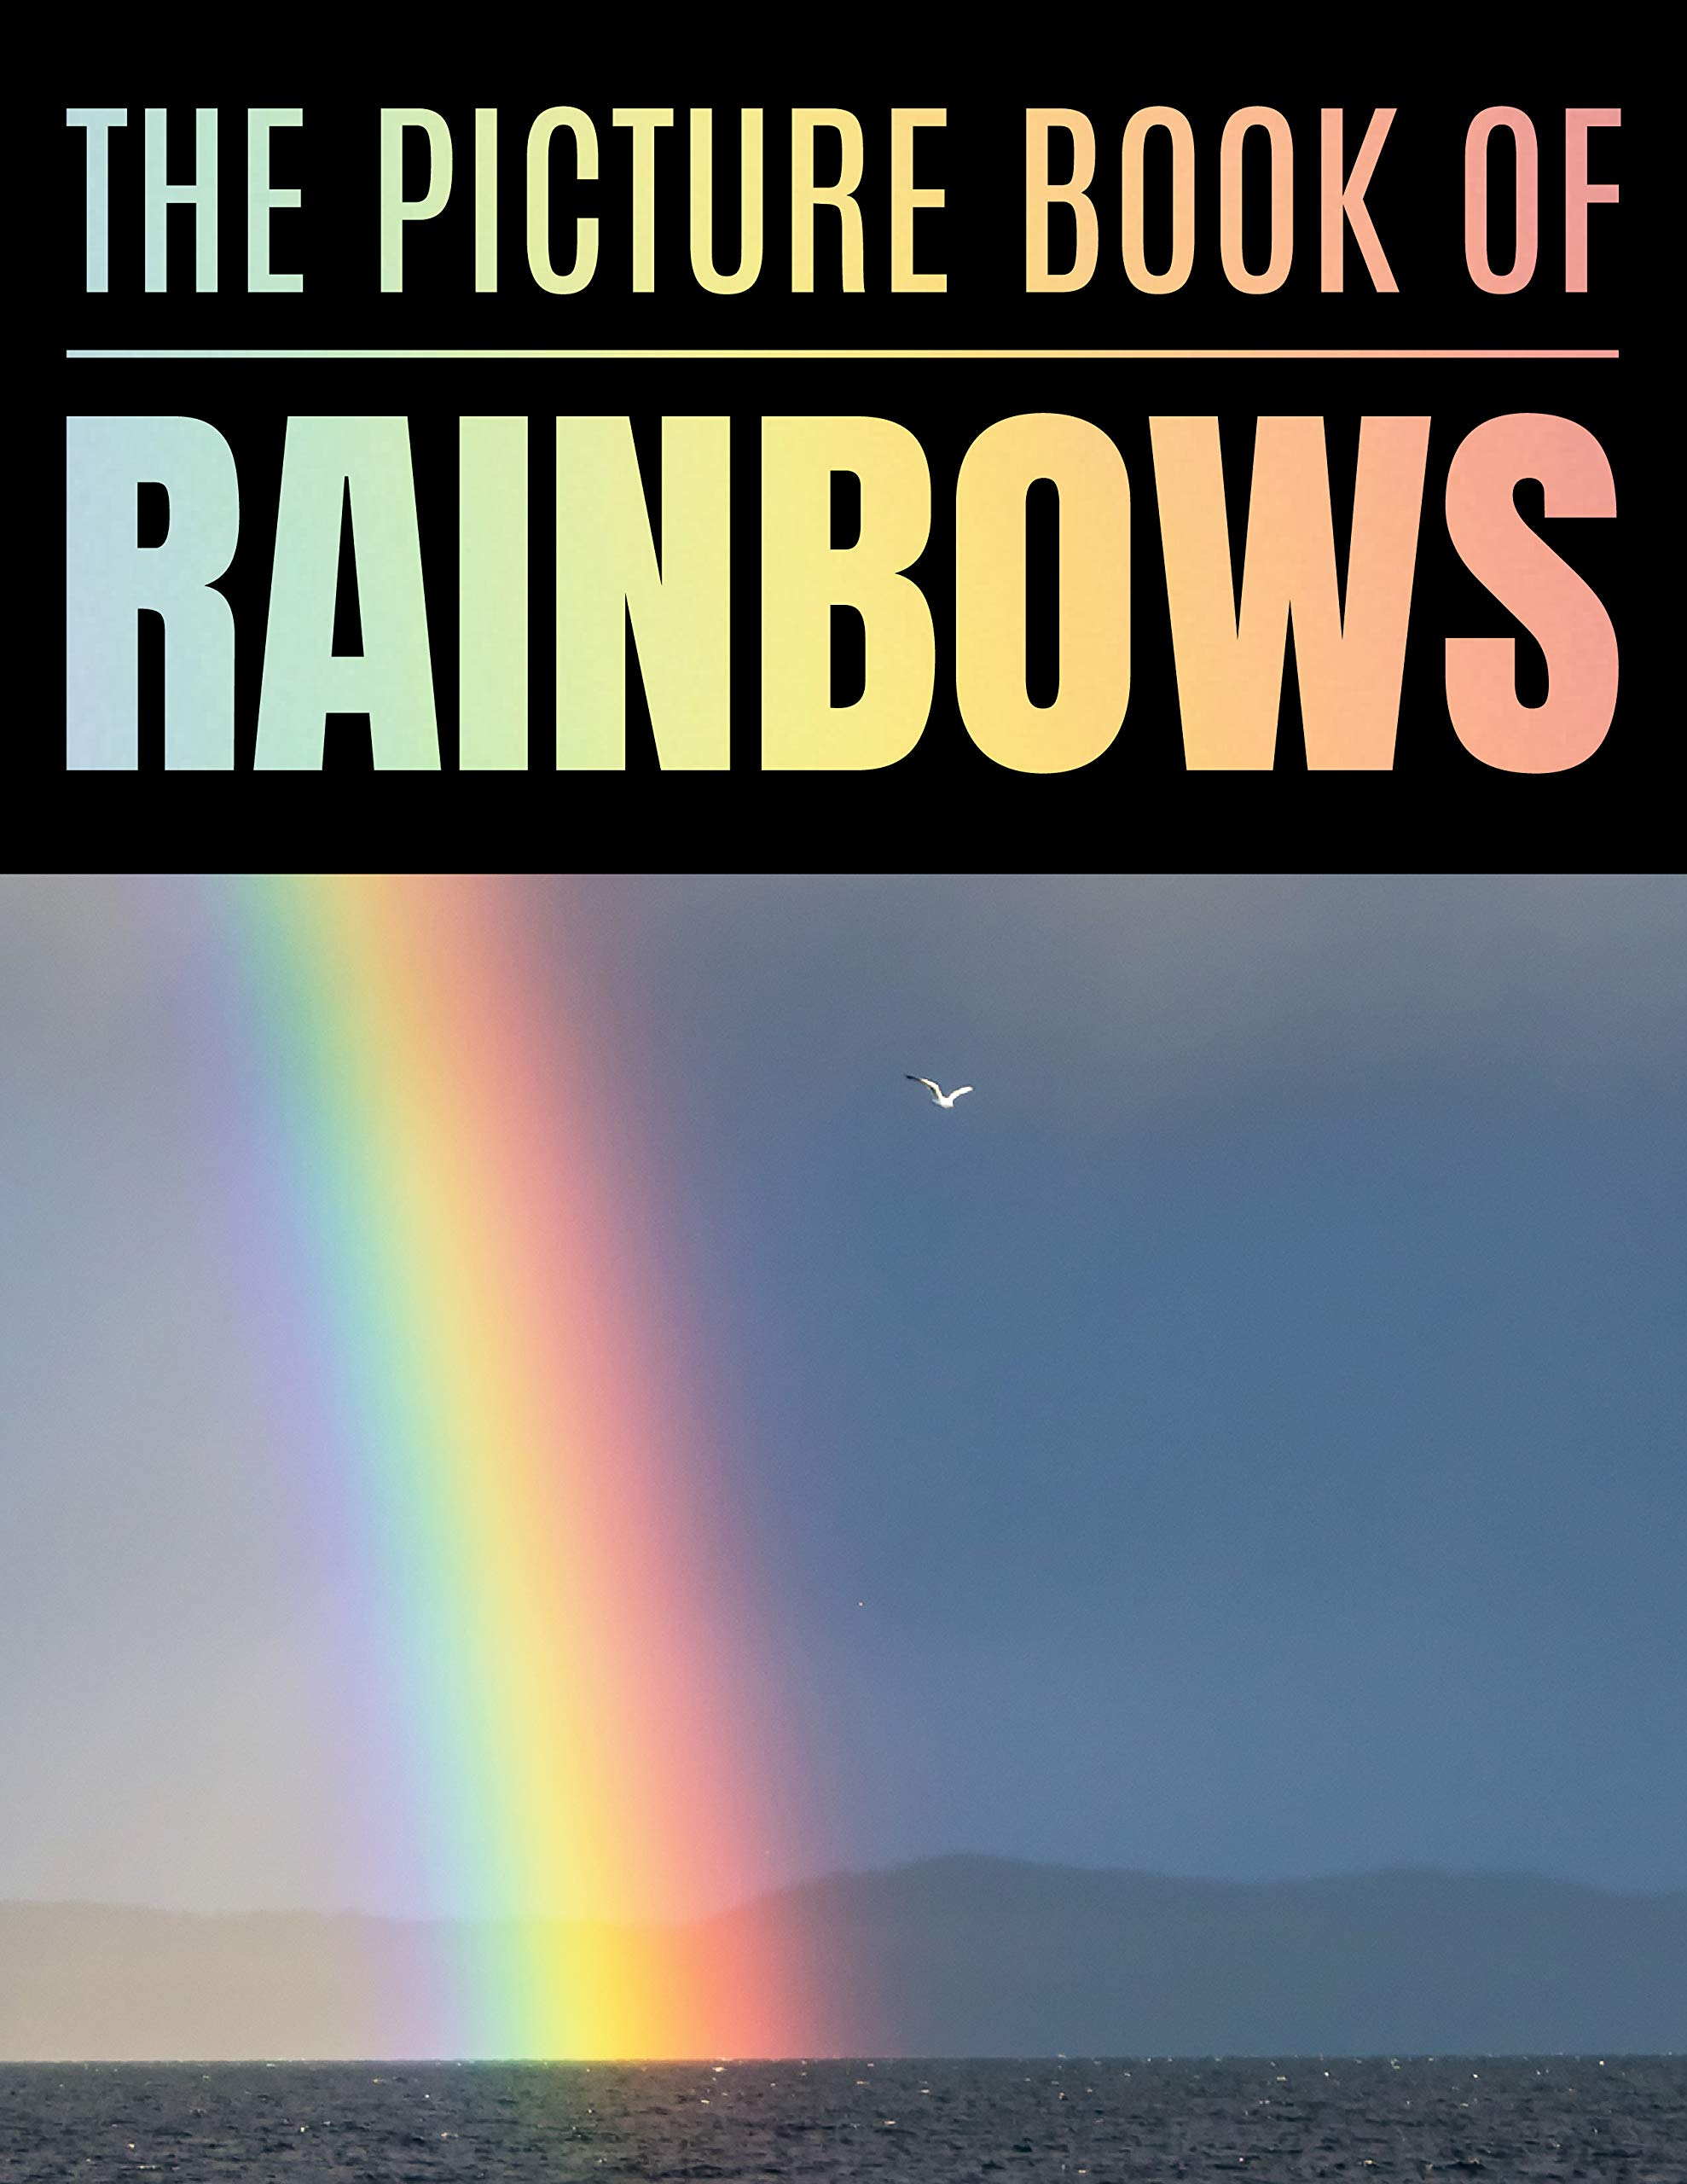 The Picture Book Of Rainbows: A Gift Idea With Adorable Full-Color Photo for Seniors or Alzheimer's Patients With Dementia | Photography Book For Rainbows Lovers !